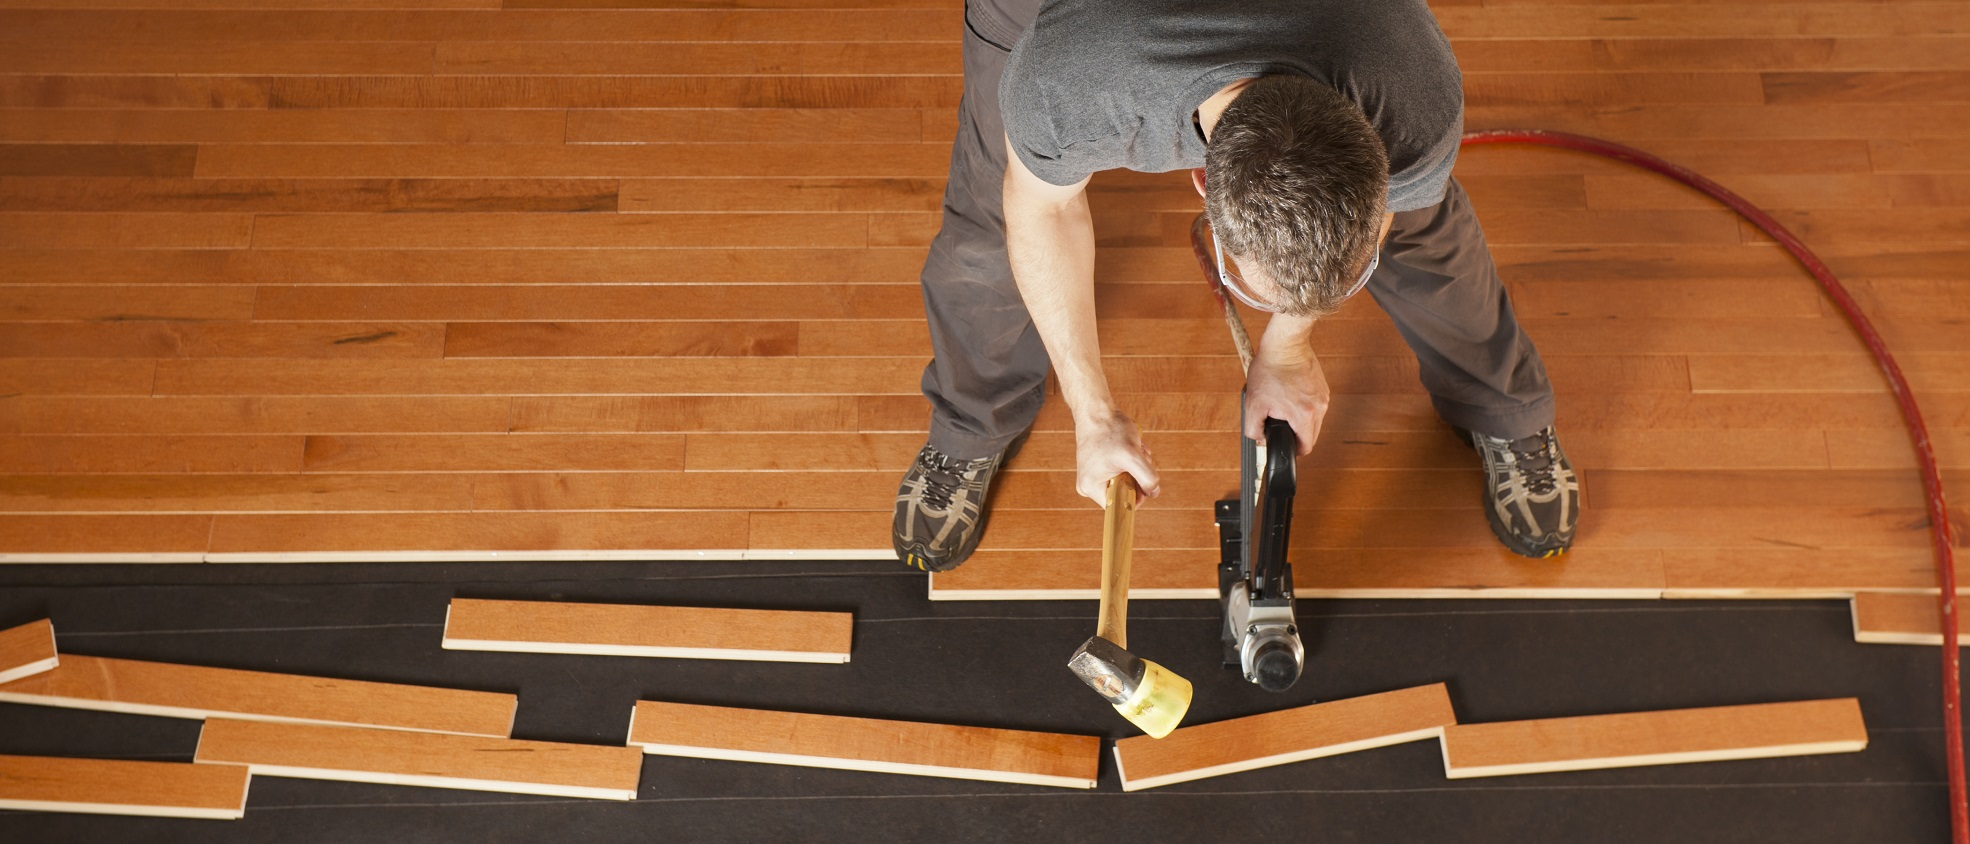 How To Lay Hardwood Floor | Carpet Review